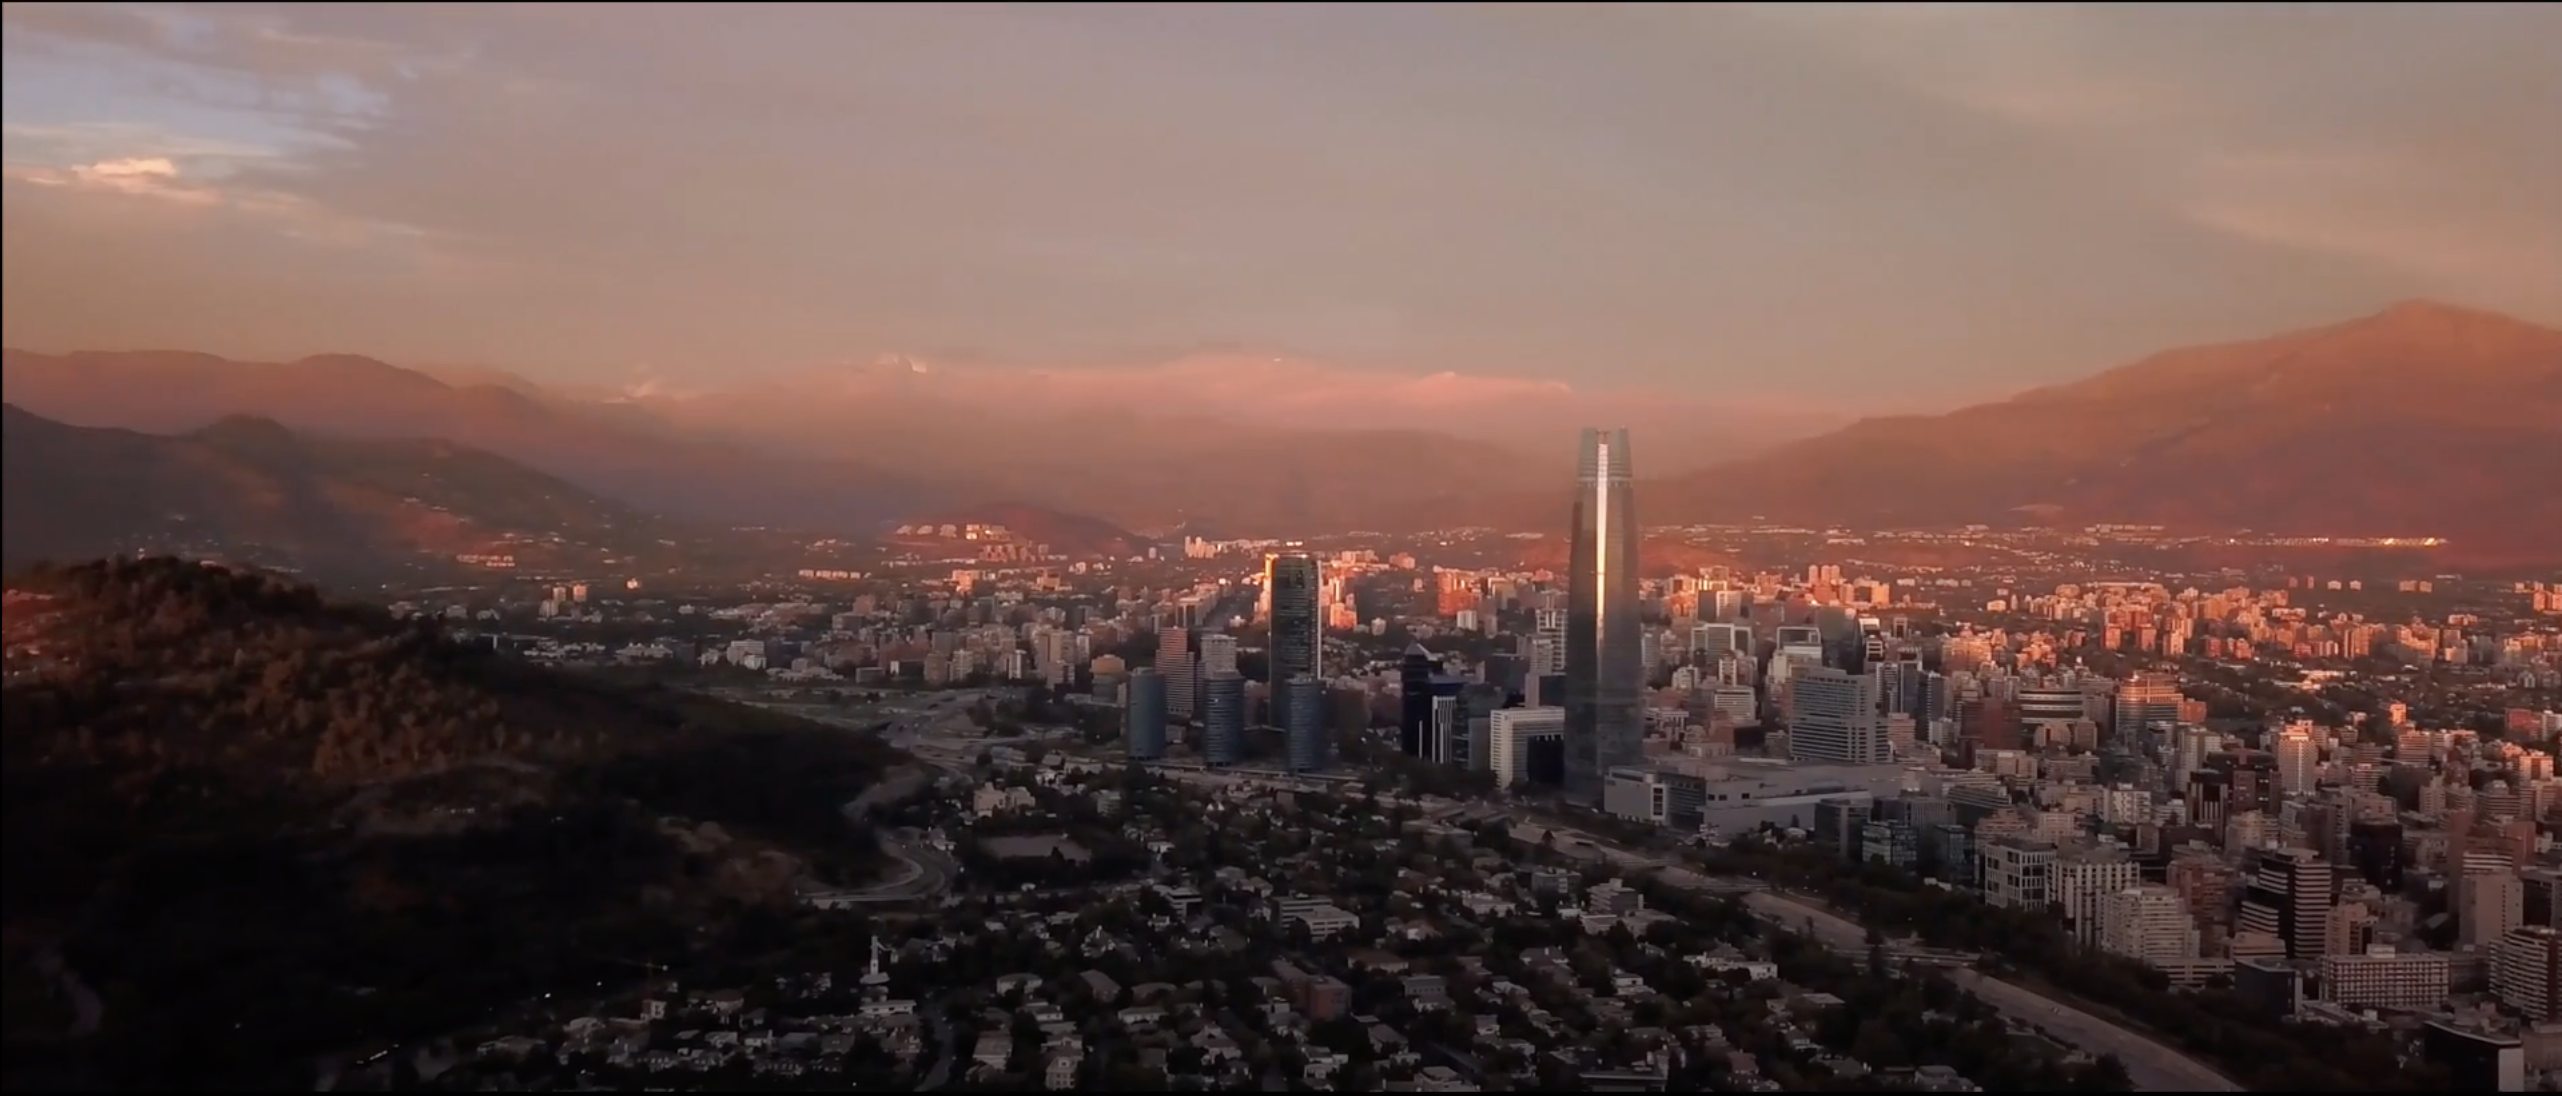 Drone shot of a sunset in Santiago de Chile, In the image is the financial district and at the end The Andes